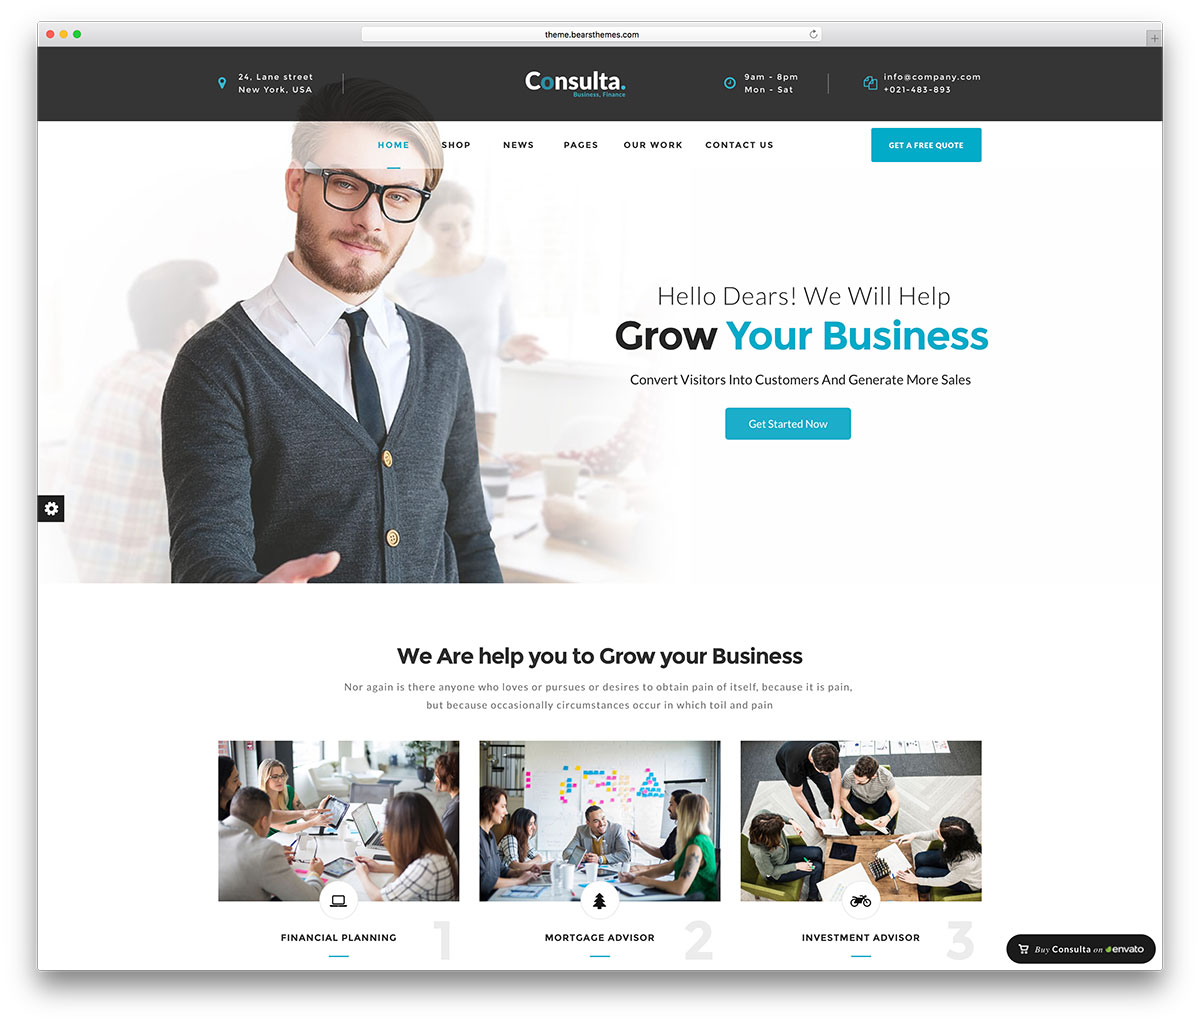 "consulta-small-business-wordpress-theme ""width ="" 1200 ""height ="" 1024 ""srcset ="" https://colorlib.com/wp/wp-content/uploads/sites/2/consulta-small-business-wordpress -theme.jpg 1200w, https://colorlib.com/wp/wp-content/uploads/sites/2/consulta-small-business-wordpress-theme-300x256.jpg 300w, https://colorlib.com/wp /wp-content/uploads/sites/2/consulta-small-business-wordpress-theme-768x655.jpg 768w, https://colorlib.com/wp/wp-content/uploads/sites/2/consulta-small- business-wordpress-theme-1024x874.jpg 1024w ""données-lazy-tailles ="" (largeur maximale: 1200px) 100vw, 1200px ""/></p> <p><noscript><img class="